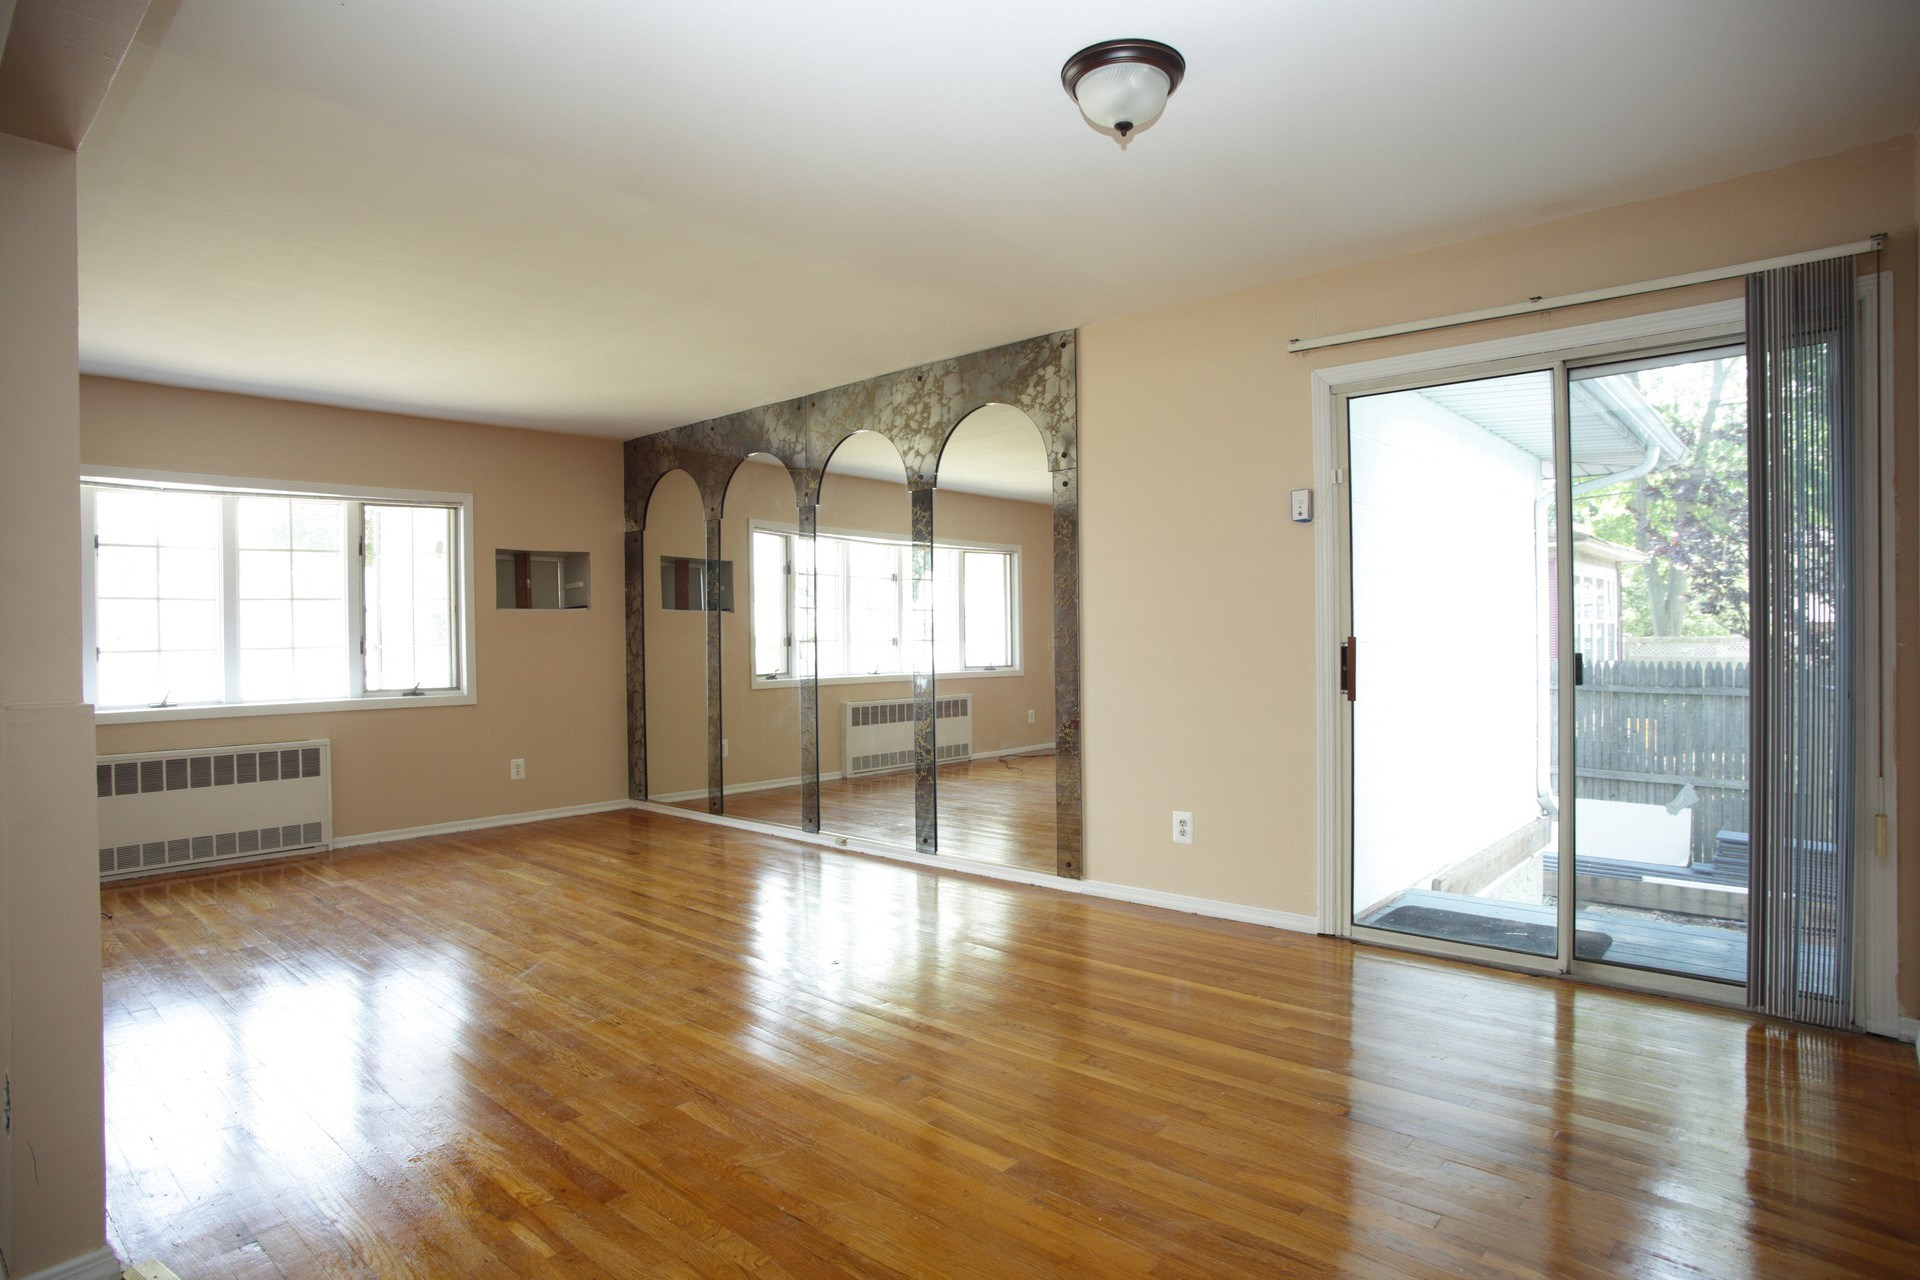 Rooms for rent in new york apartments flats commercial - 3 bedroom apartments for sale nyc ...